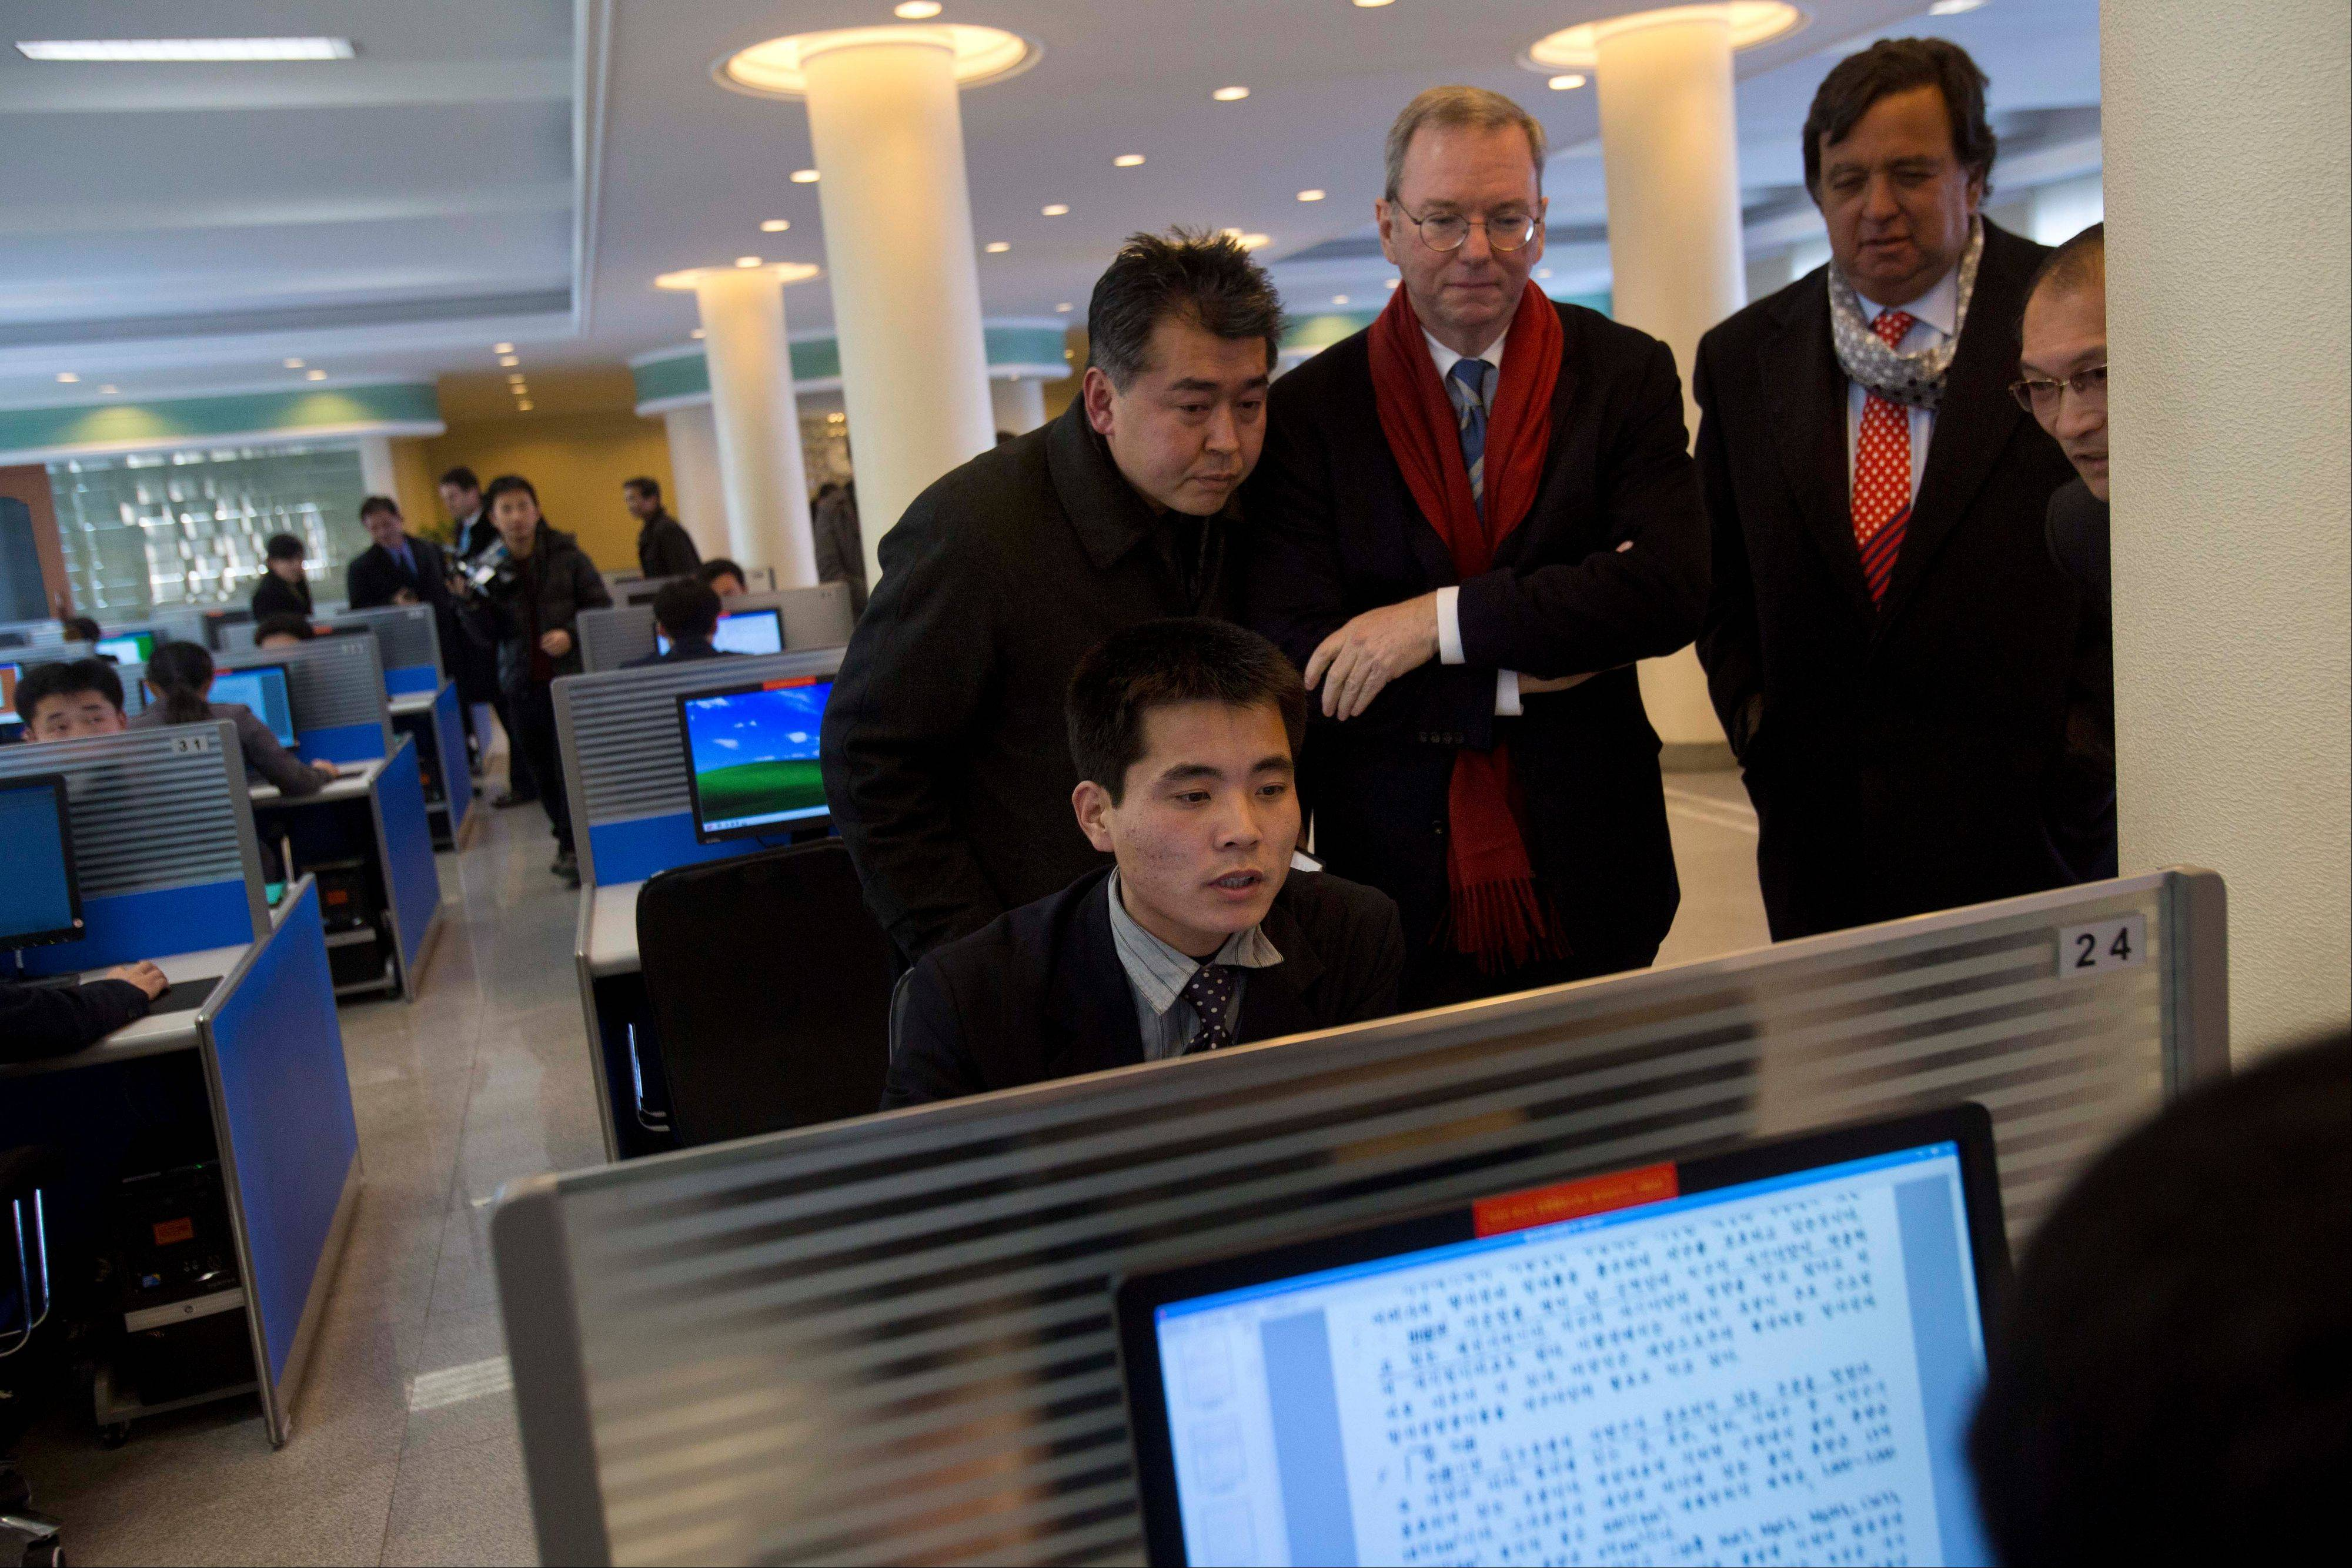 Executive Chairman of Google, Eric Schmidt, third from left, and former New Mexico governor Bill Richardson, second from right, watch Tuesday as a North Korean student surfs the Internet at a computer lab during a tour of Kim Il Sung University in Pyongyang, North Korea. Schmidt is the highest-profile U.S. executive to visit North Korea � a country with notoriously restrictive online policies � since young leader Kim Jong Un took power a year ago.